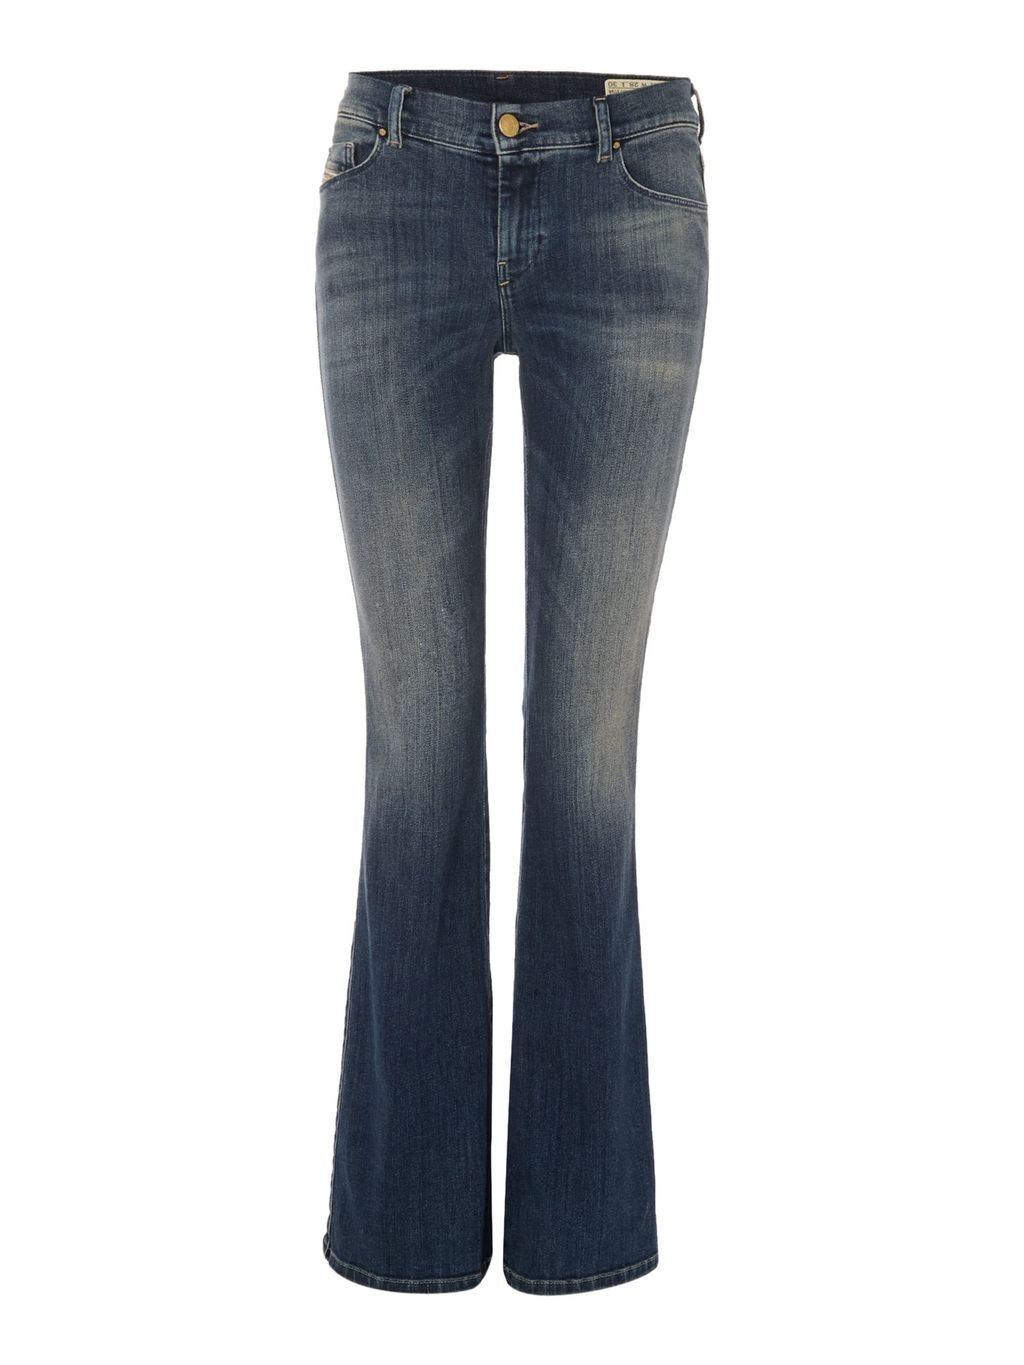 Sandy B 0855 Q Bootcut Jeans Leg 30, Blue - style: bootcut; length: standard; pattern: plain; pocket detail: traditional 5 pocket; waist: mid/regular rise; predominant colour: denim; occasions: casual; fibres: cotton - stretch; jeans detail: whiskering, shading down centre of thigh; texture group: denim; pattern type: fabric; season: s/s 2016